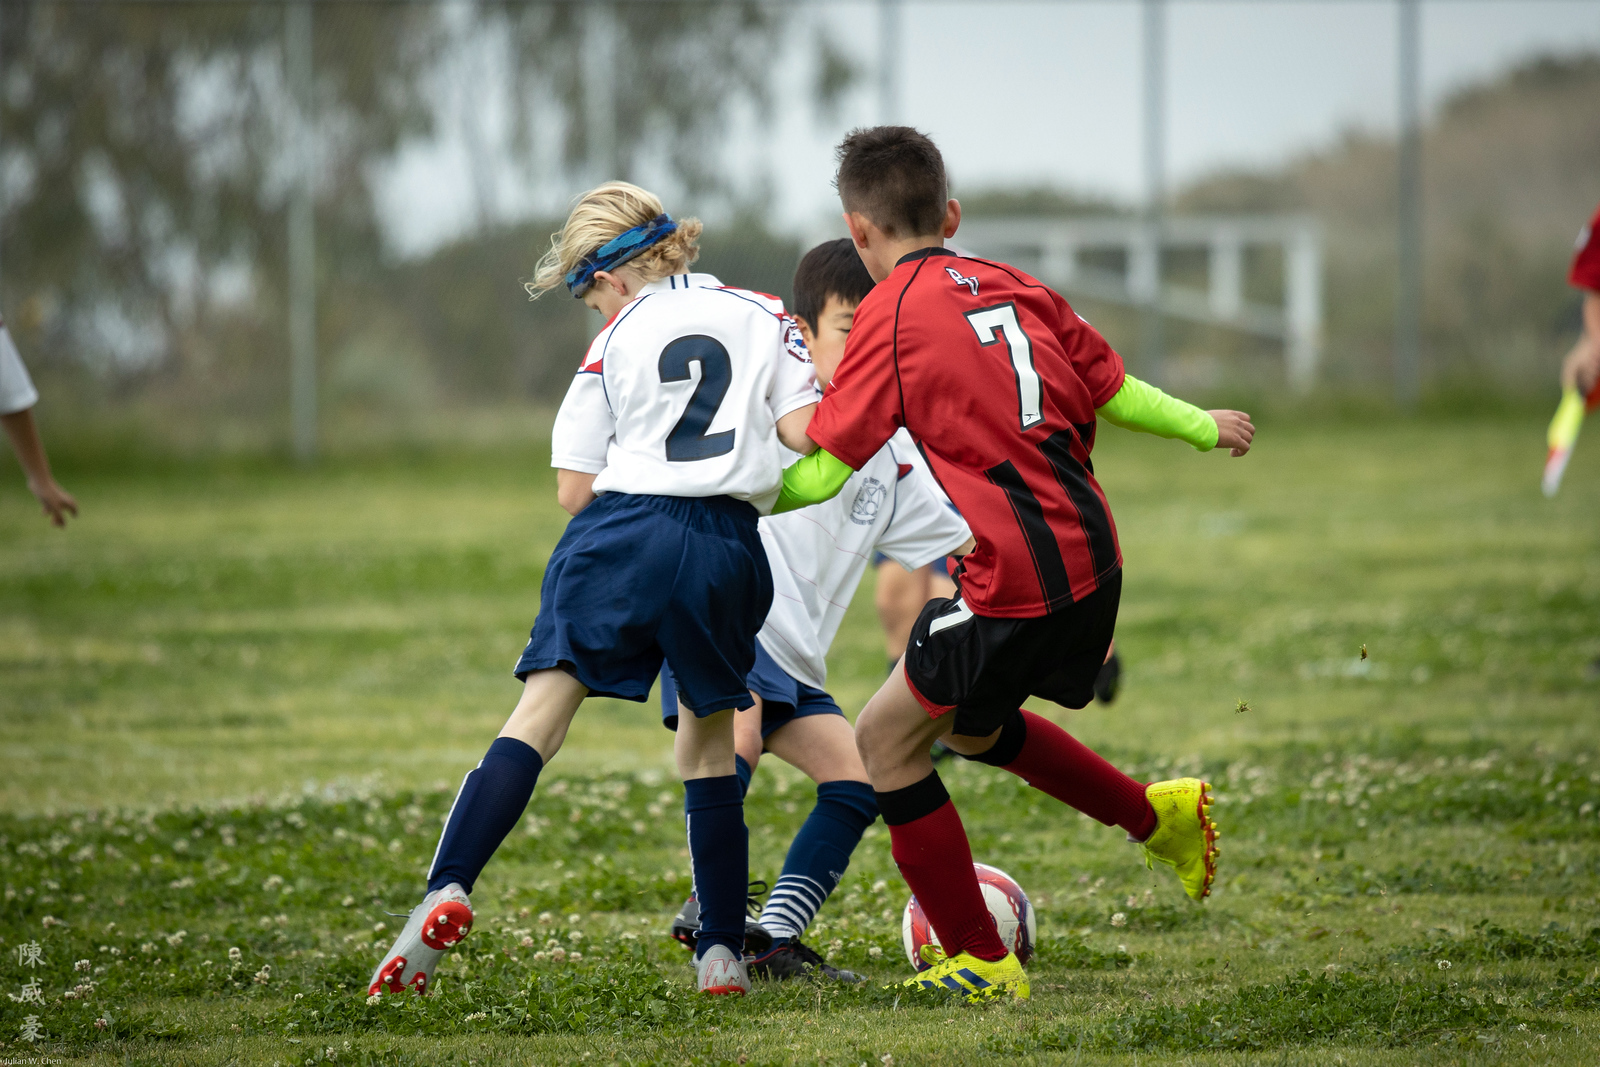 IMAGE: https://photos.smugmug.com/Photography/Sports/2020-AYSO-Renegades/i-Nvd3Kkj/0/c43e3281/X3/20200223-Canon%20EOS-1D%20X%20Mark%20III-1DX30364-X3.jpg